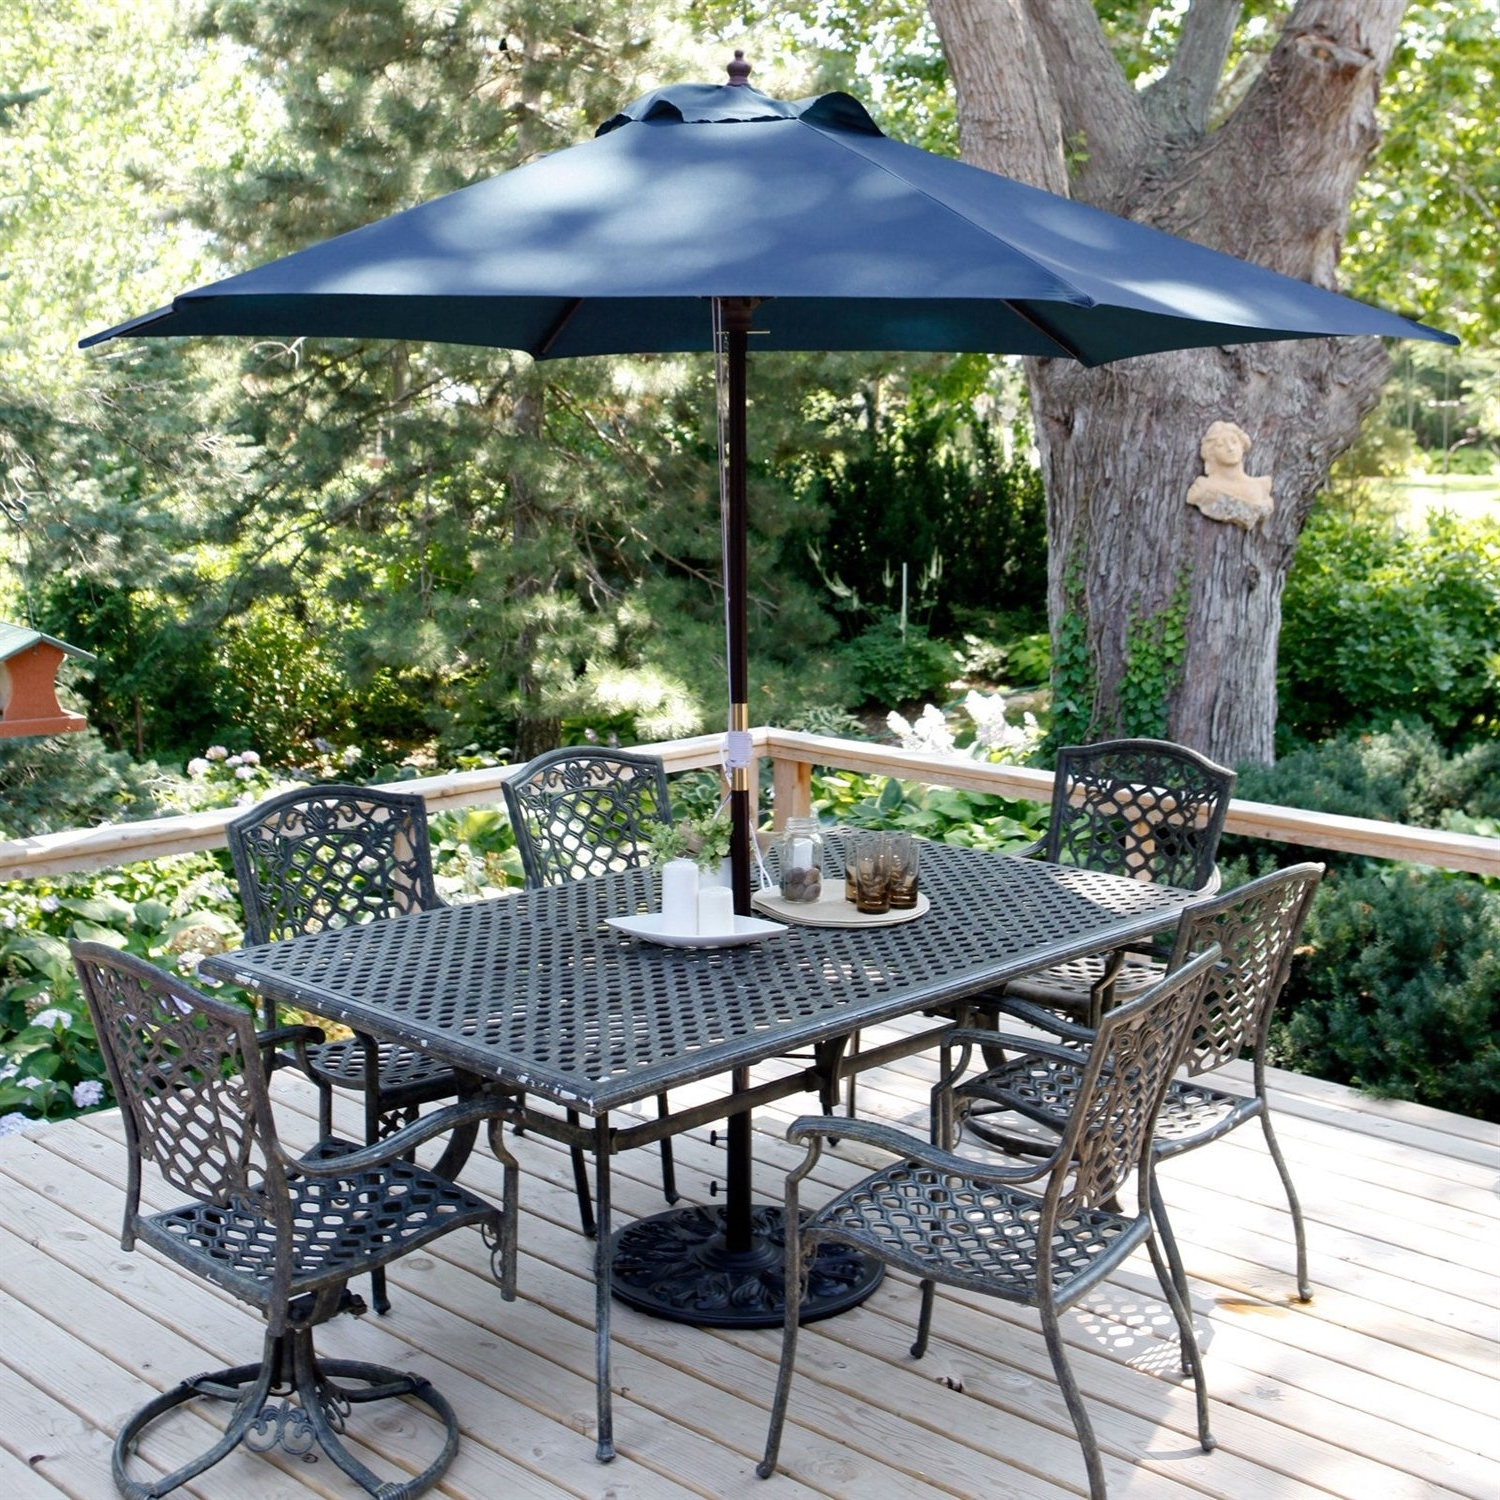 Blue Patio Umbrellas Throughout Widely Used Navy Blue 11 Ft Patio Umbrella With Antique Bronze Pole And Base (View 7 of 20)